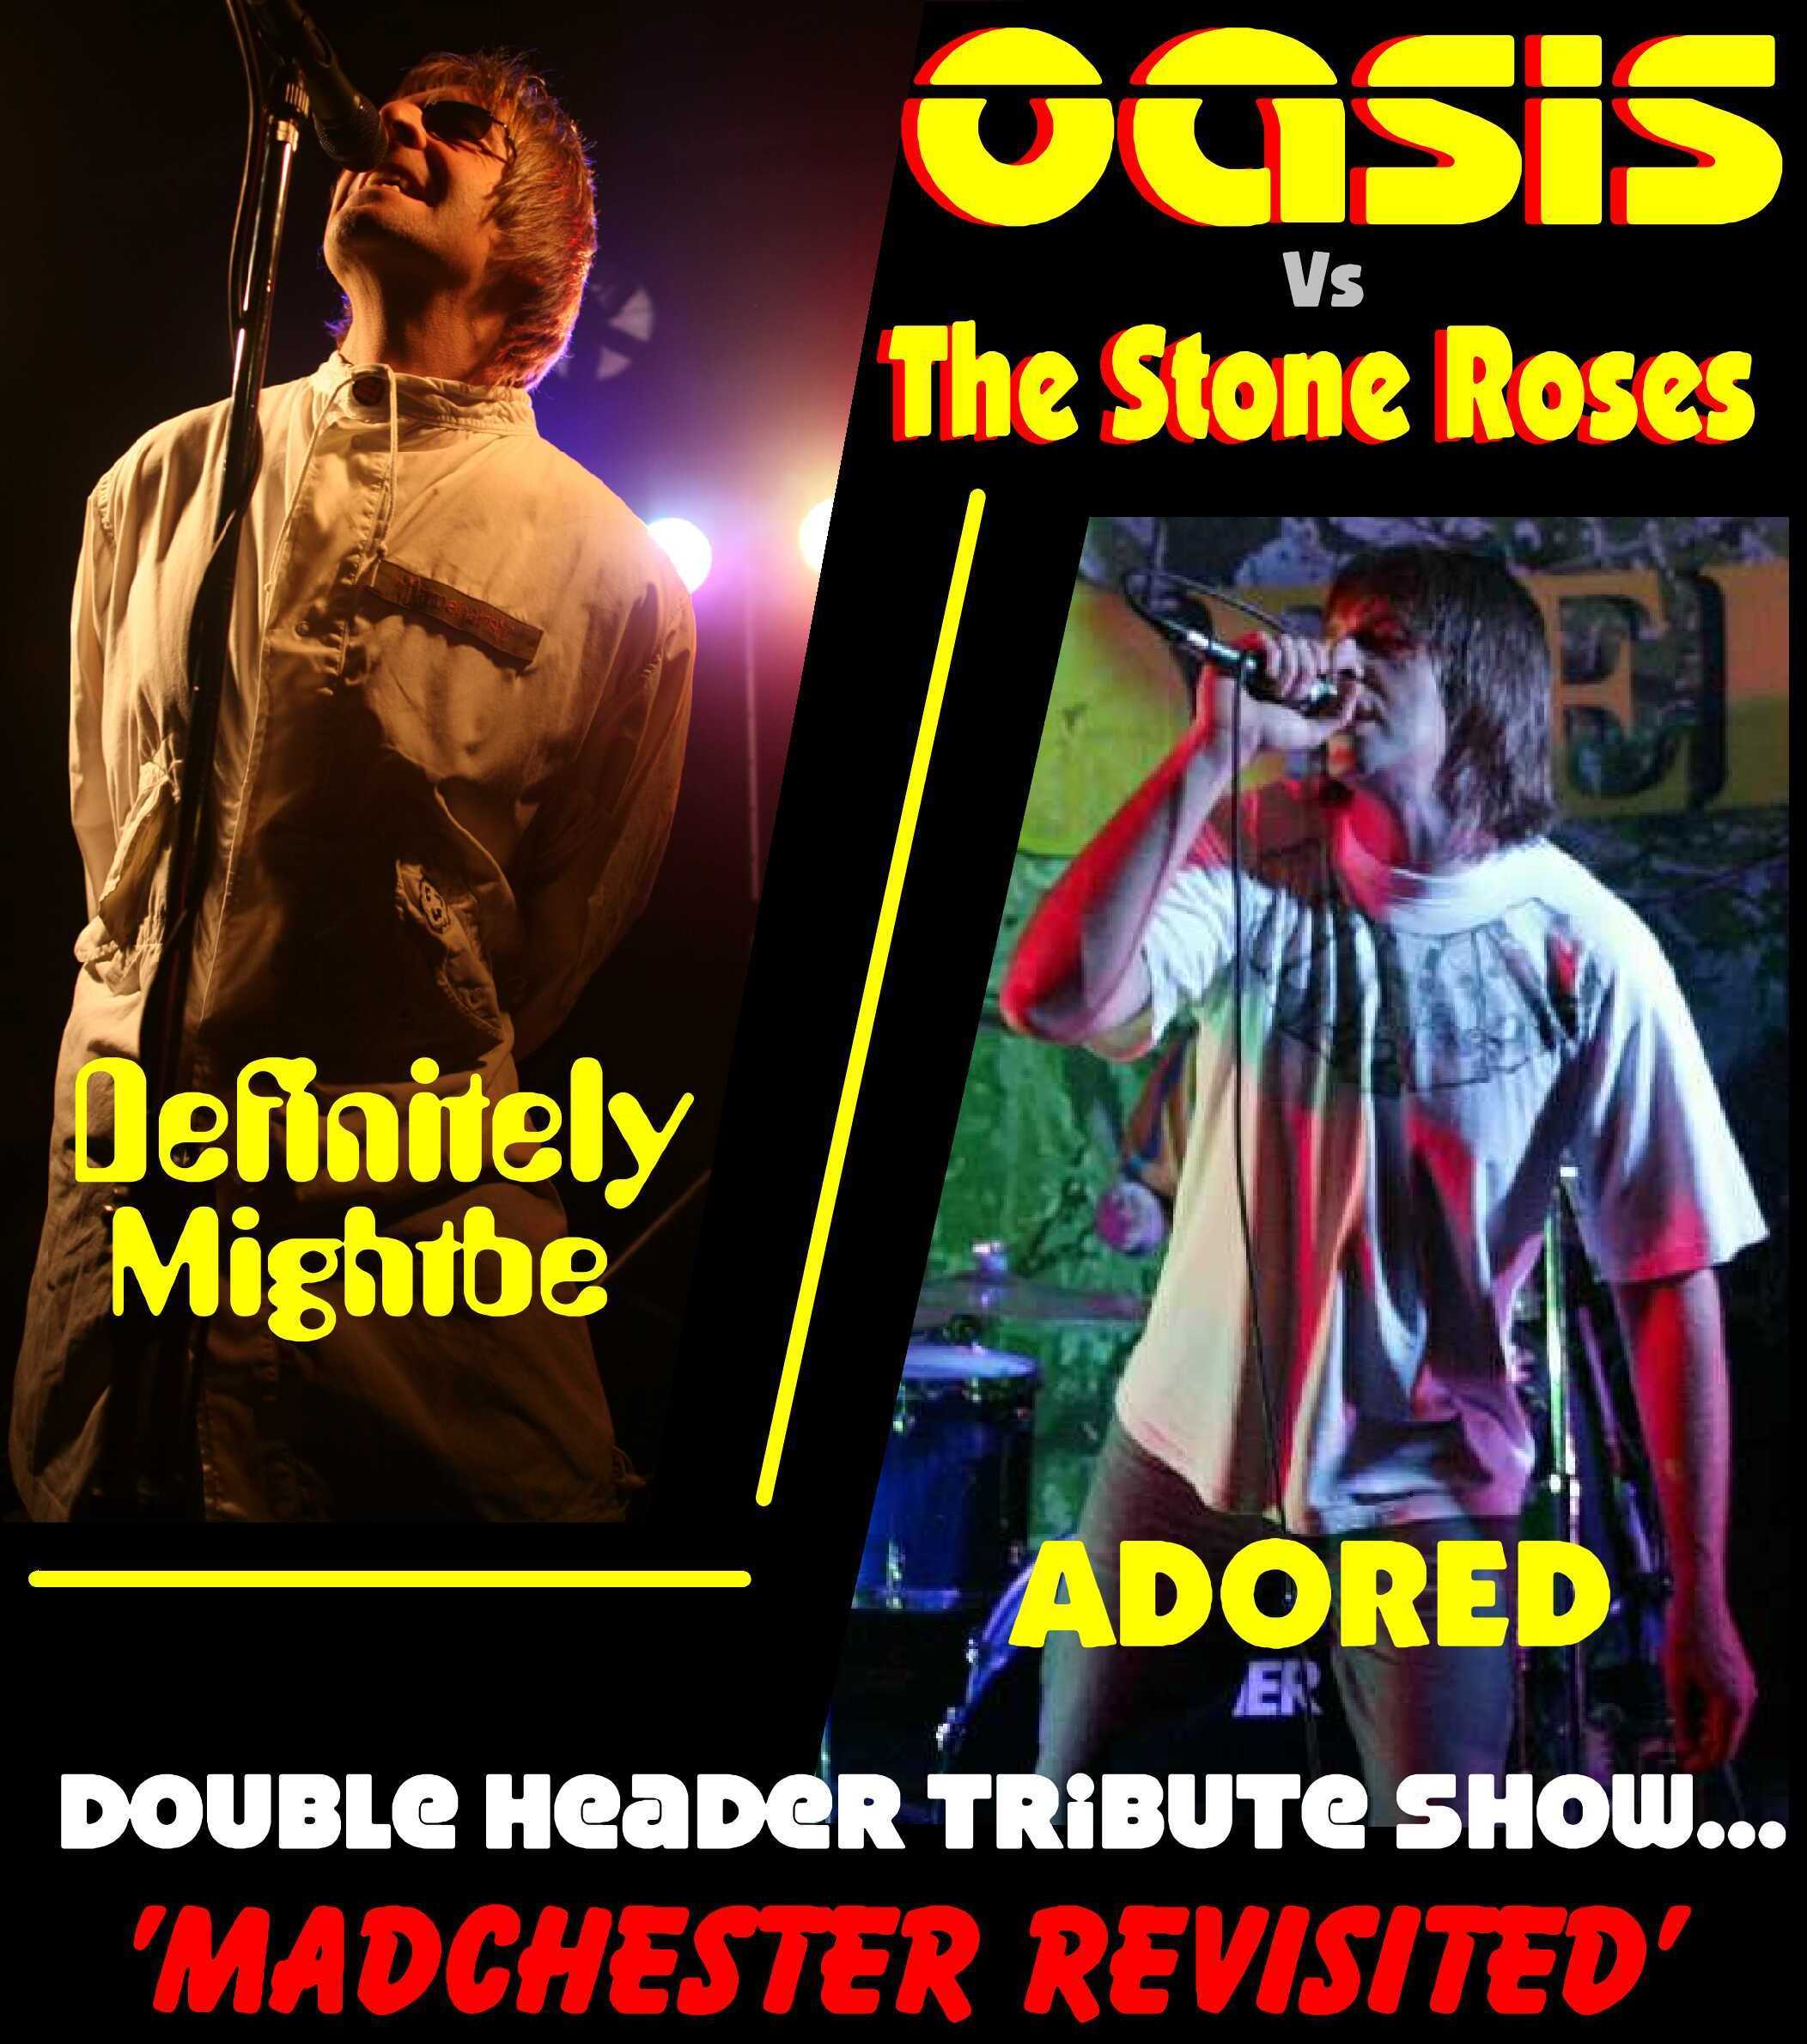 Oasis vs The Stone Roses